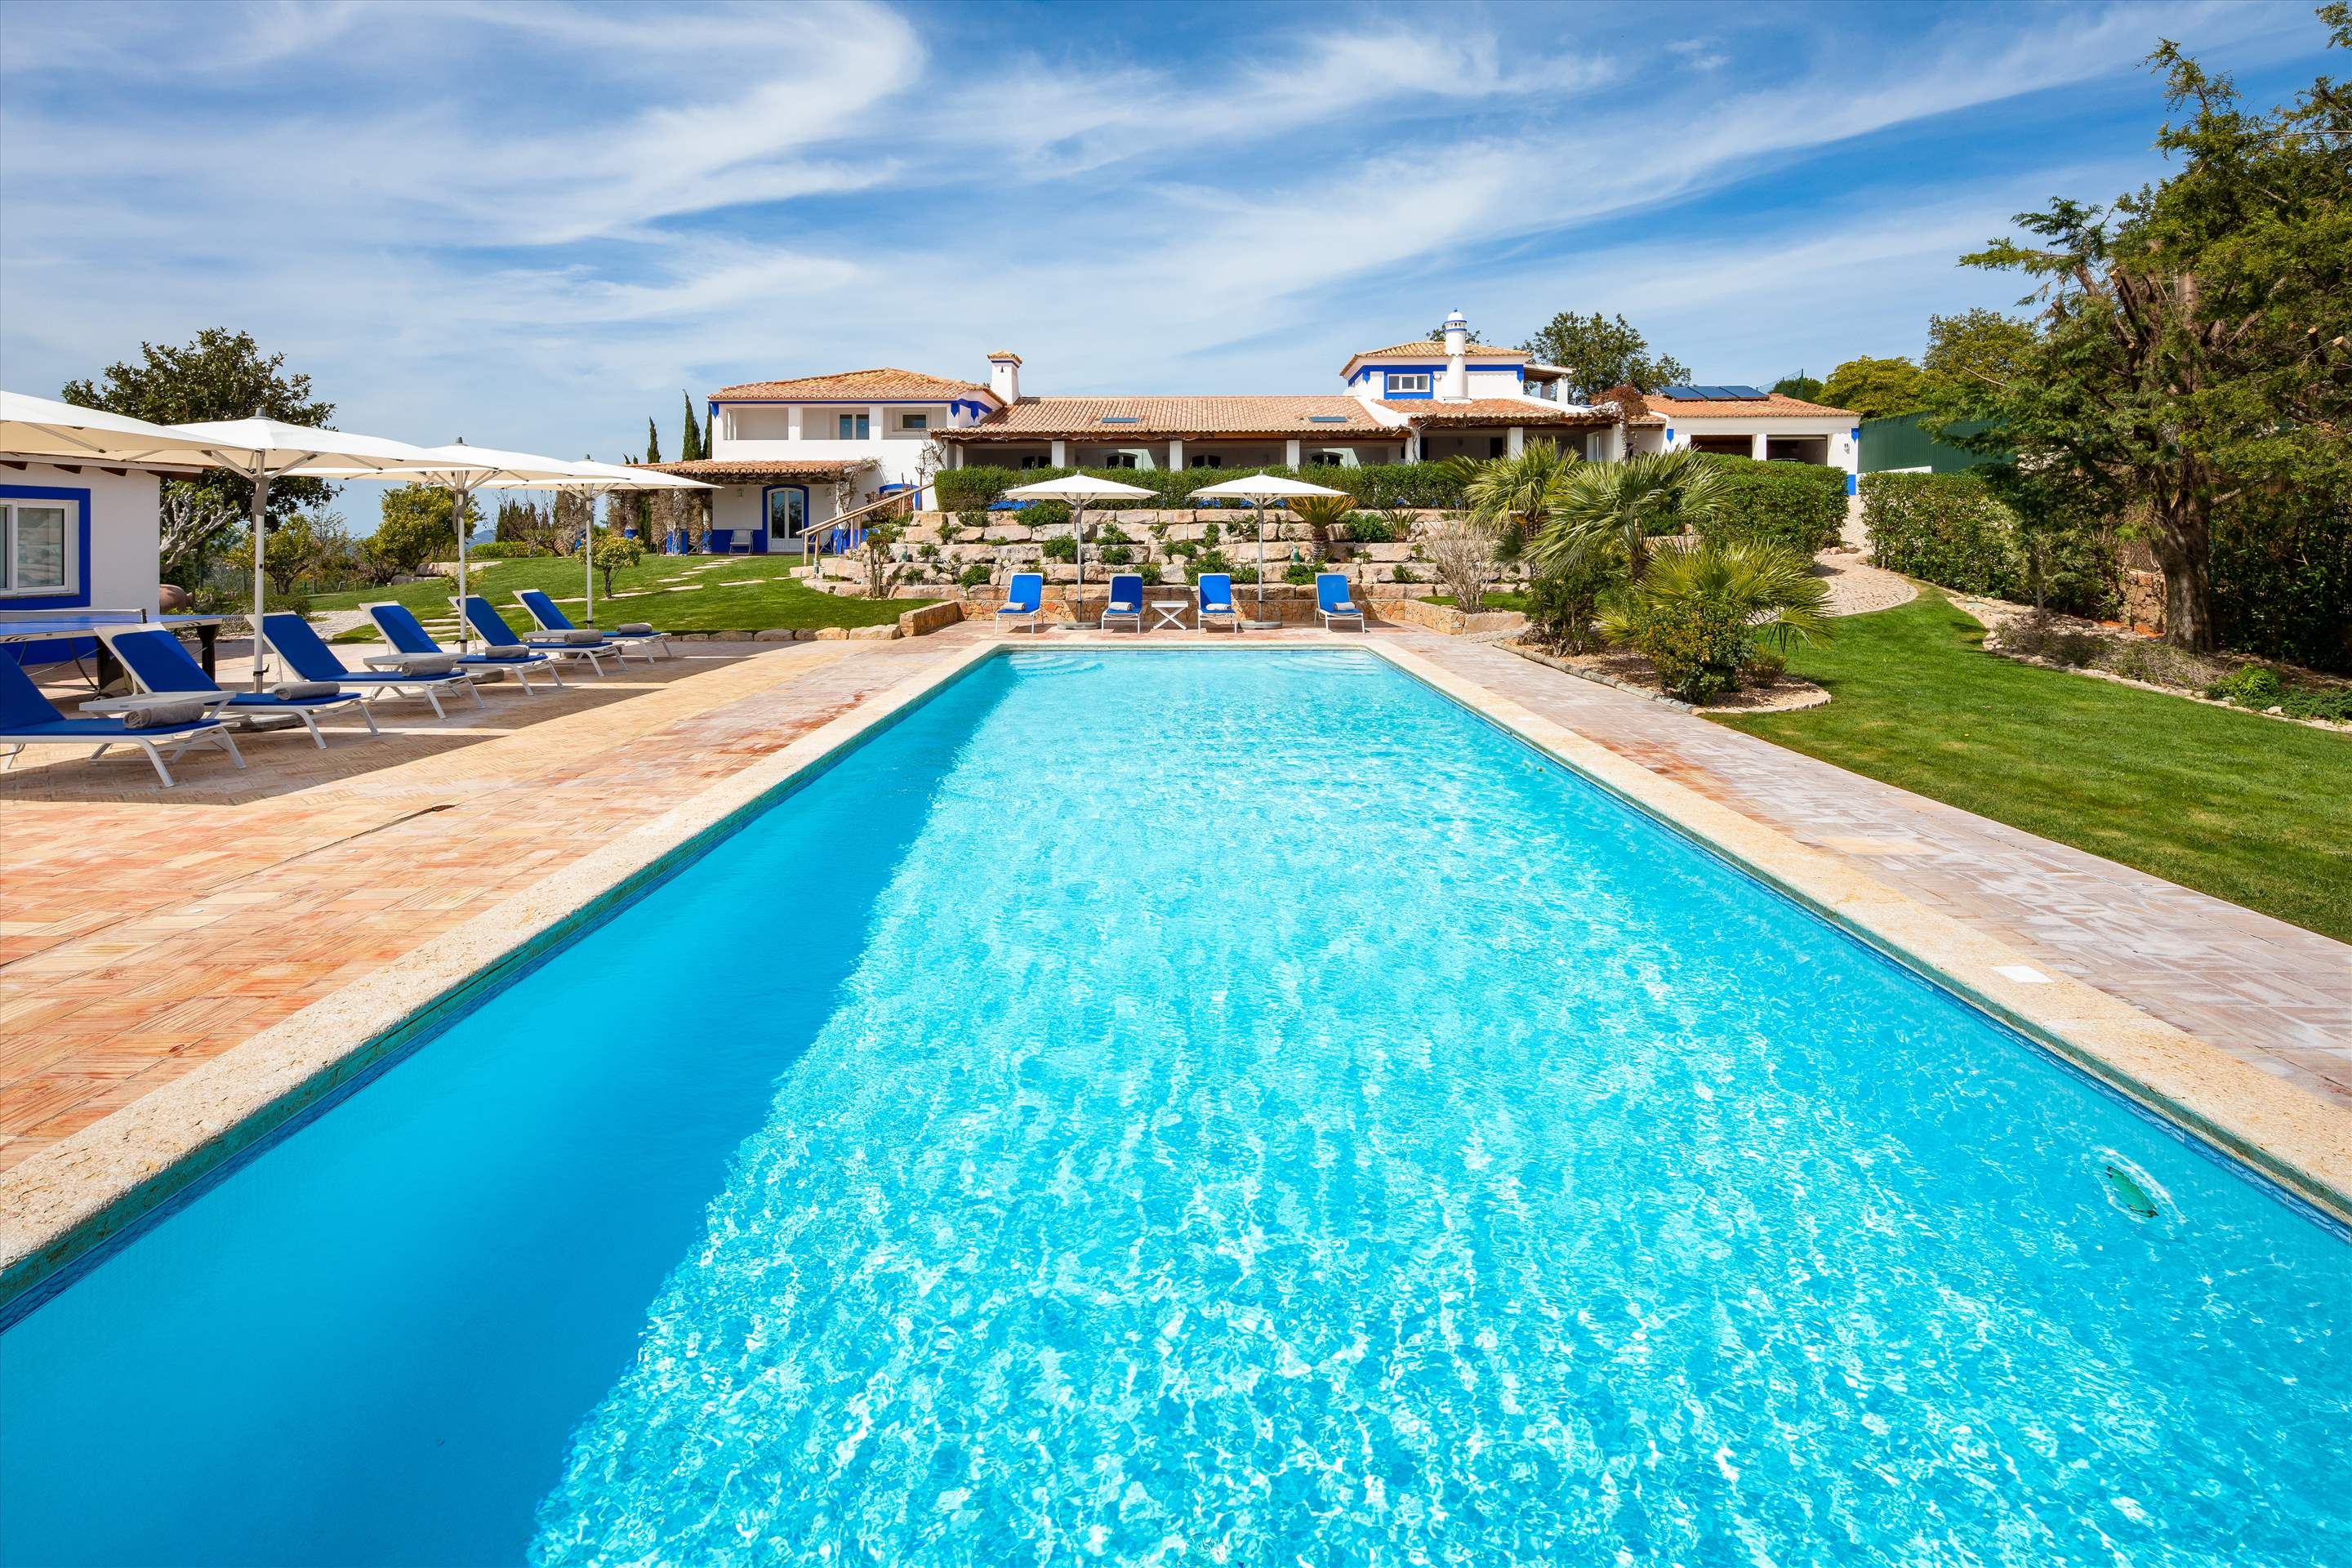 Casa da Montanha, 15-16 persons, 9 bedroom villa in Vilamoura Area, Algarve